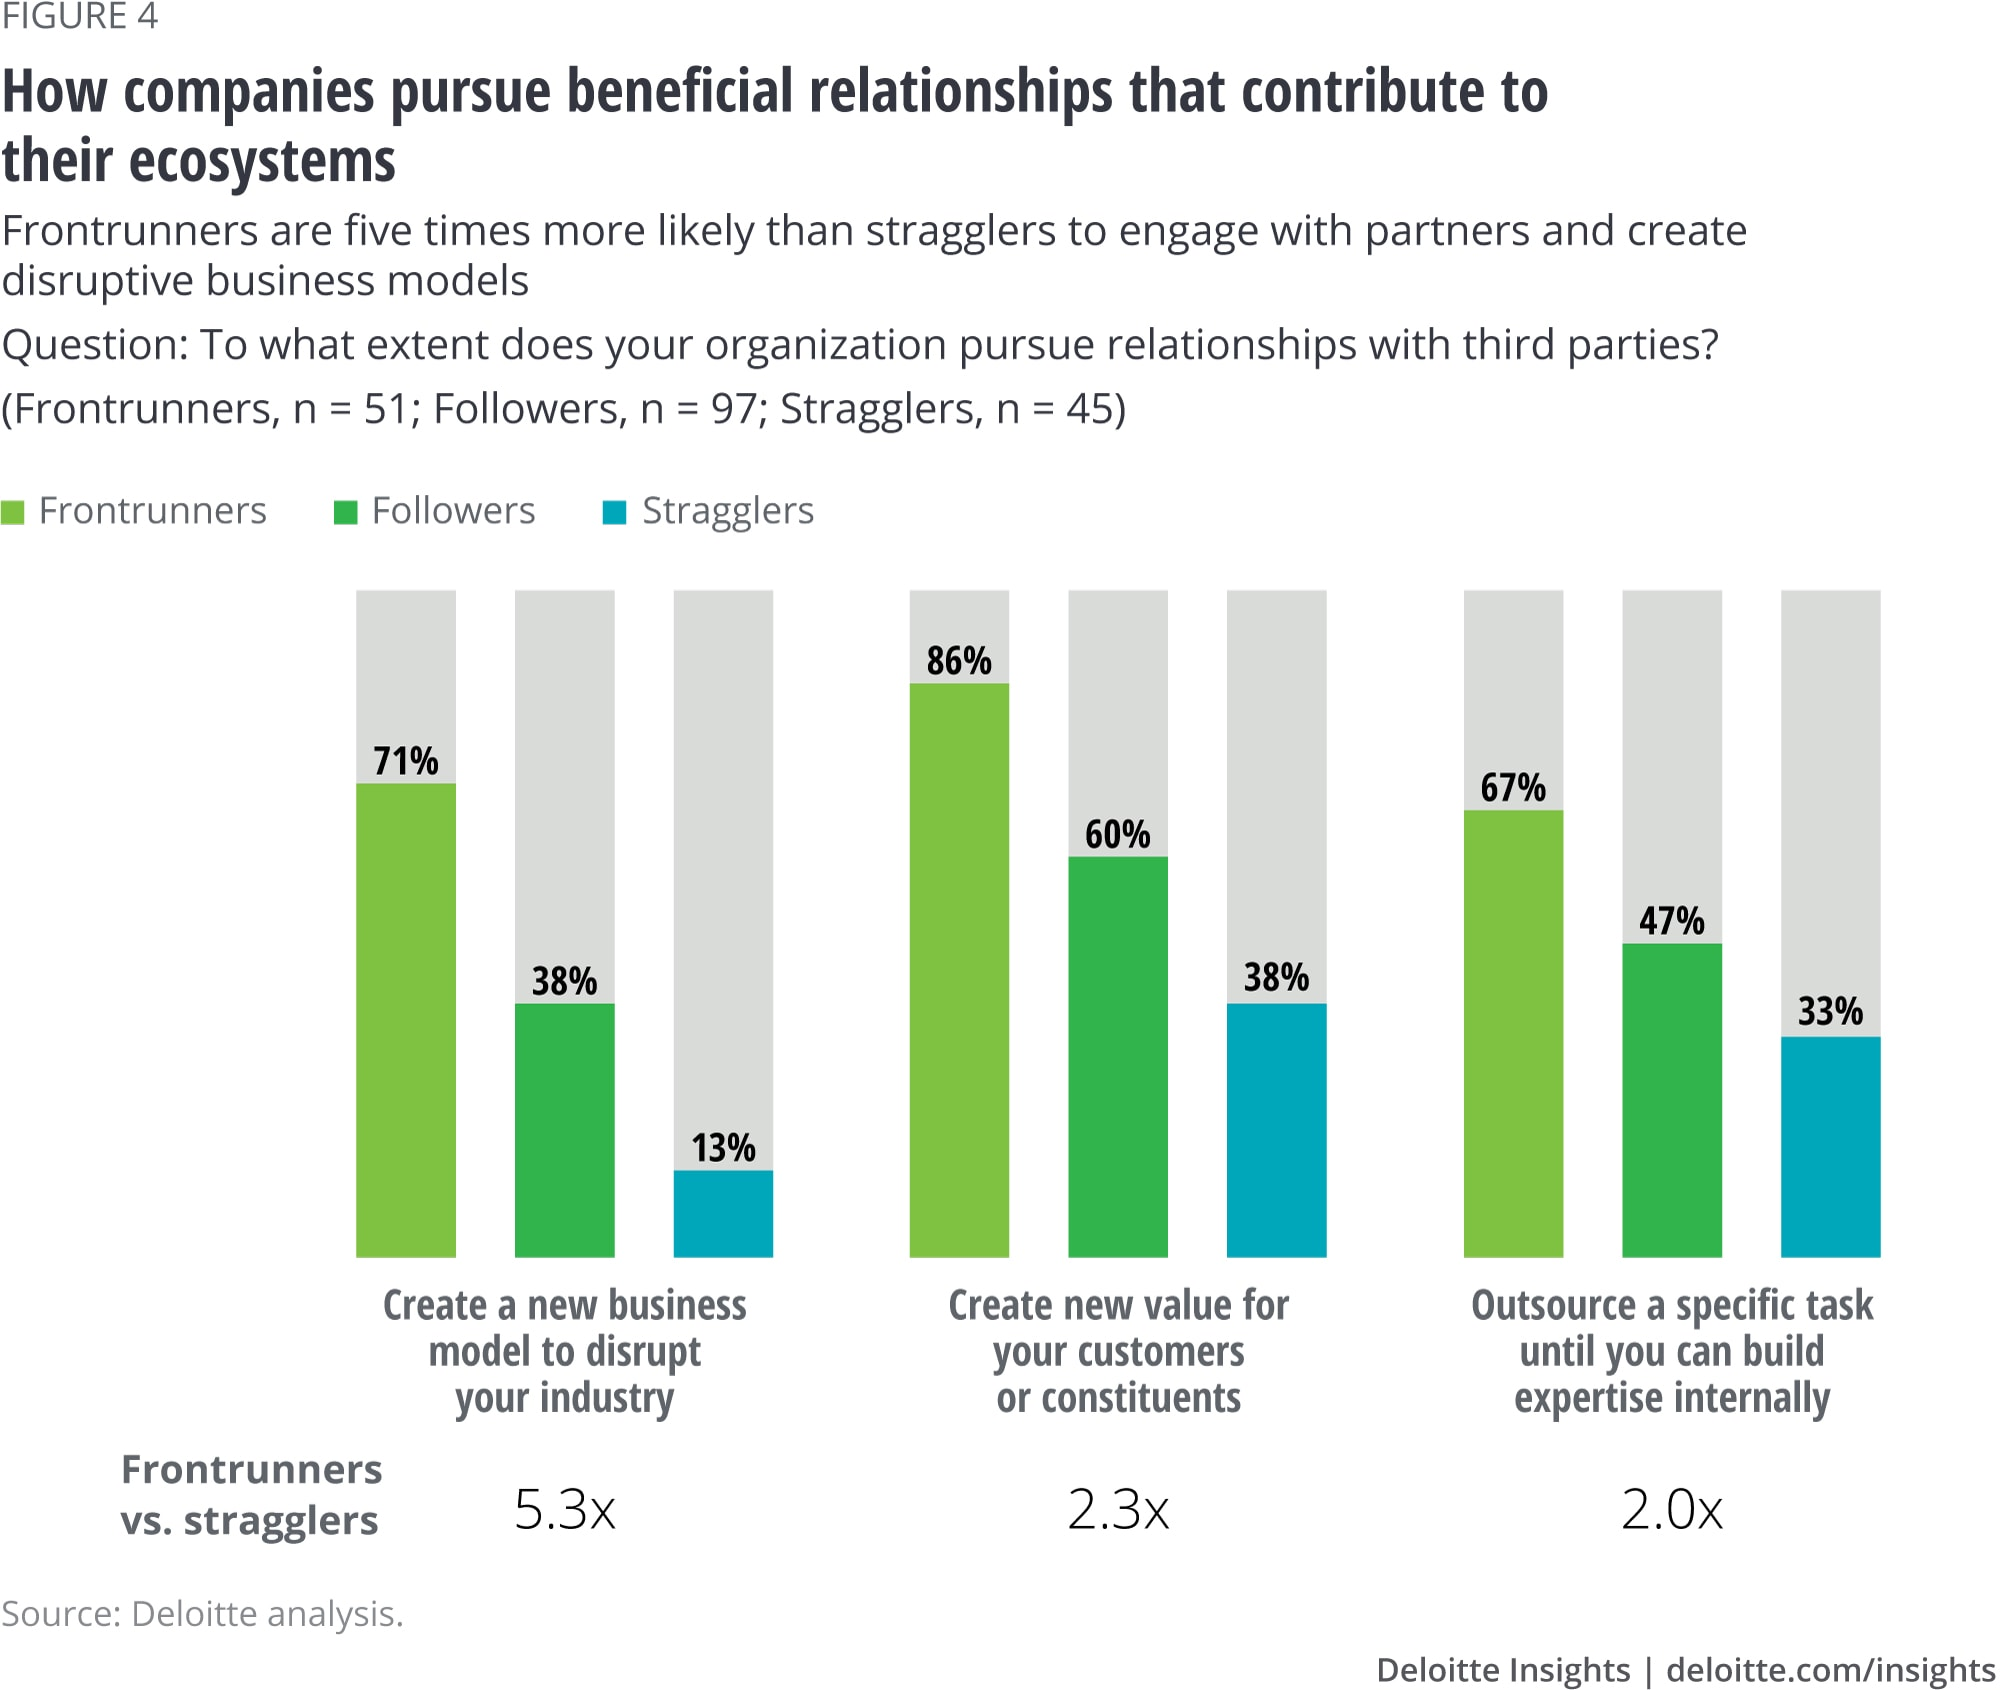 How companies pursue beneficial relationships that contribute to their ecosystems